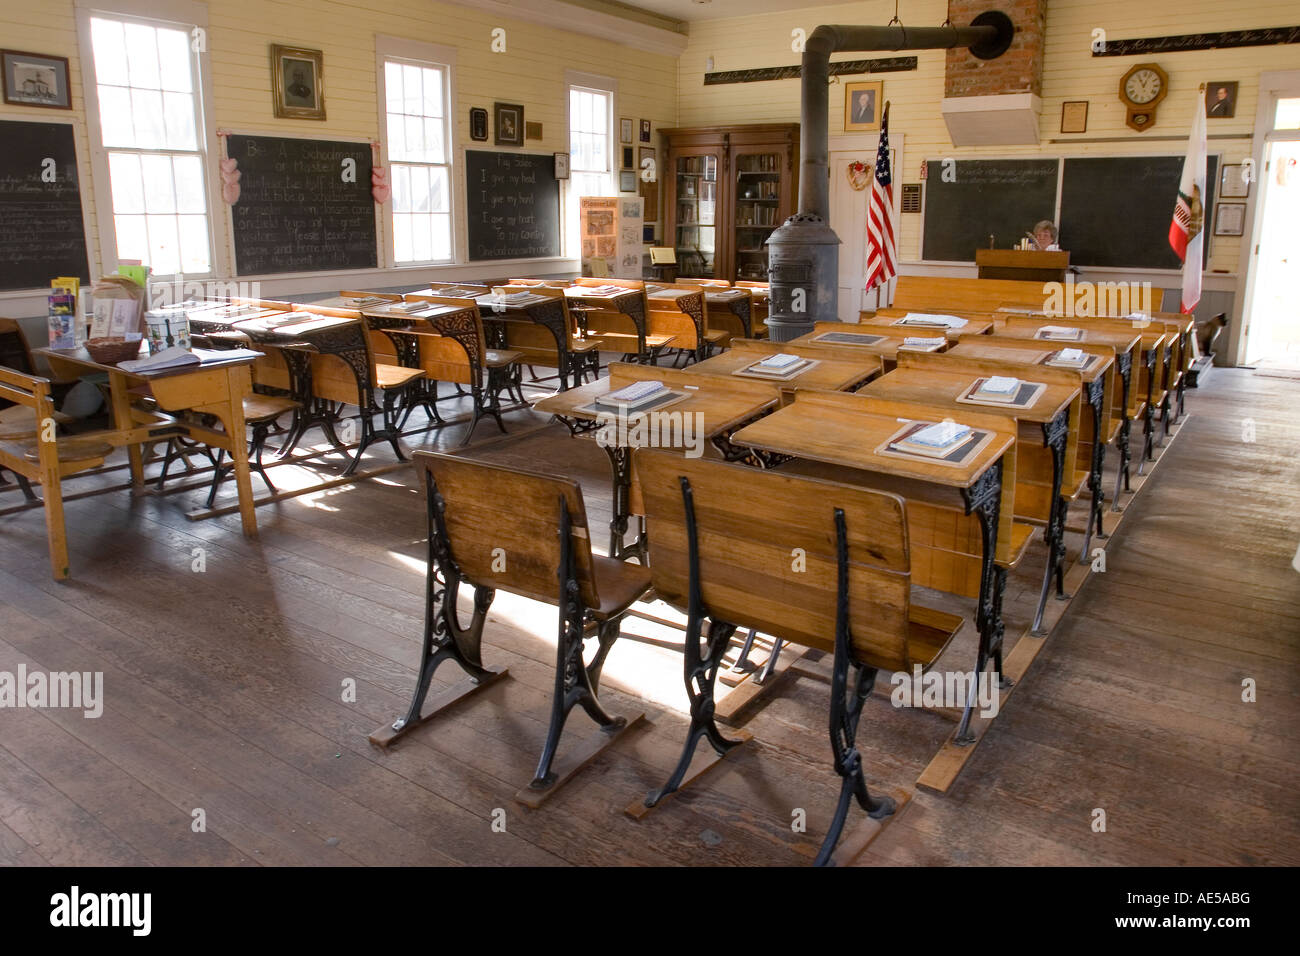 Classroom in replica of 1800s era one room schoolhouse with childrens desks chalkboards and wood stove Old Town - Stock Image